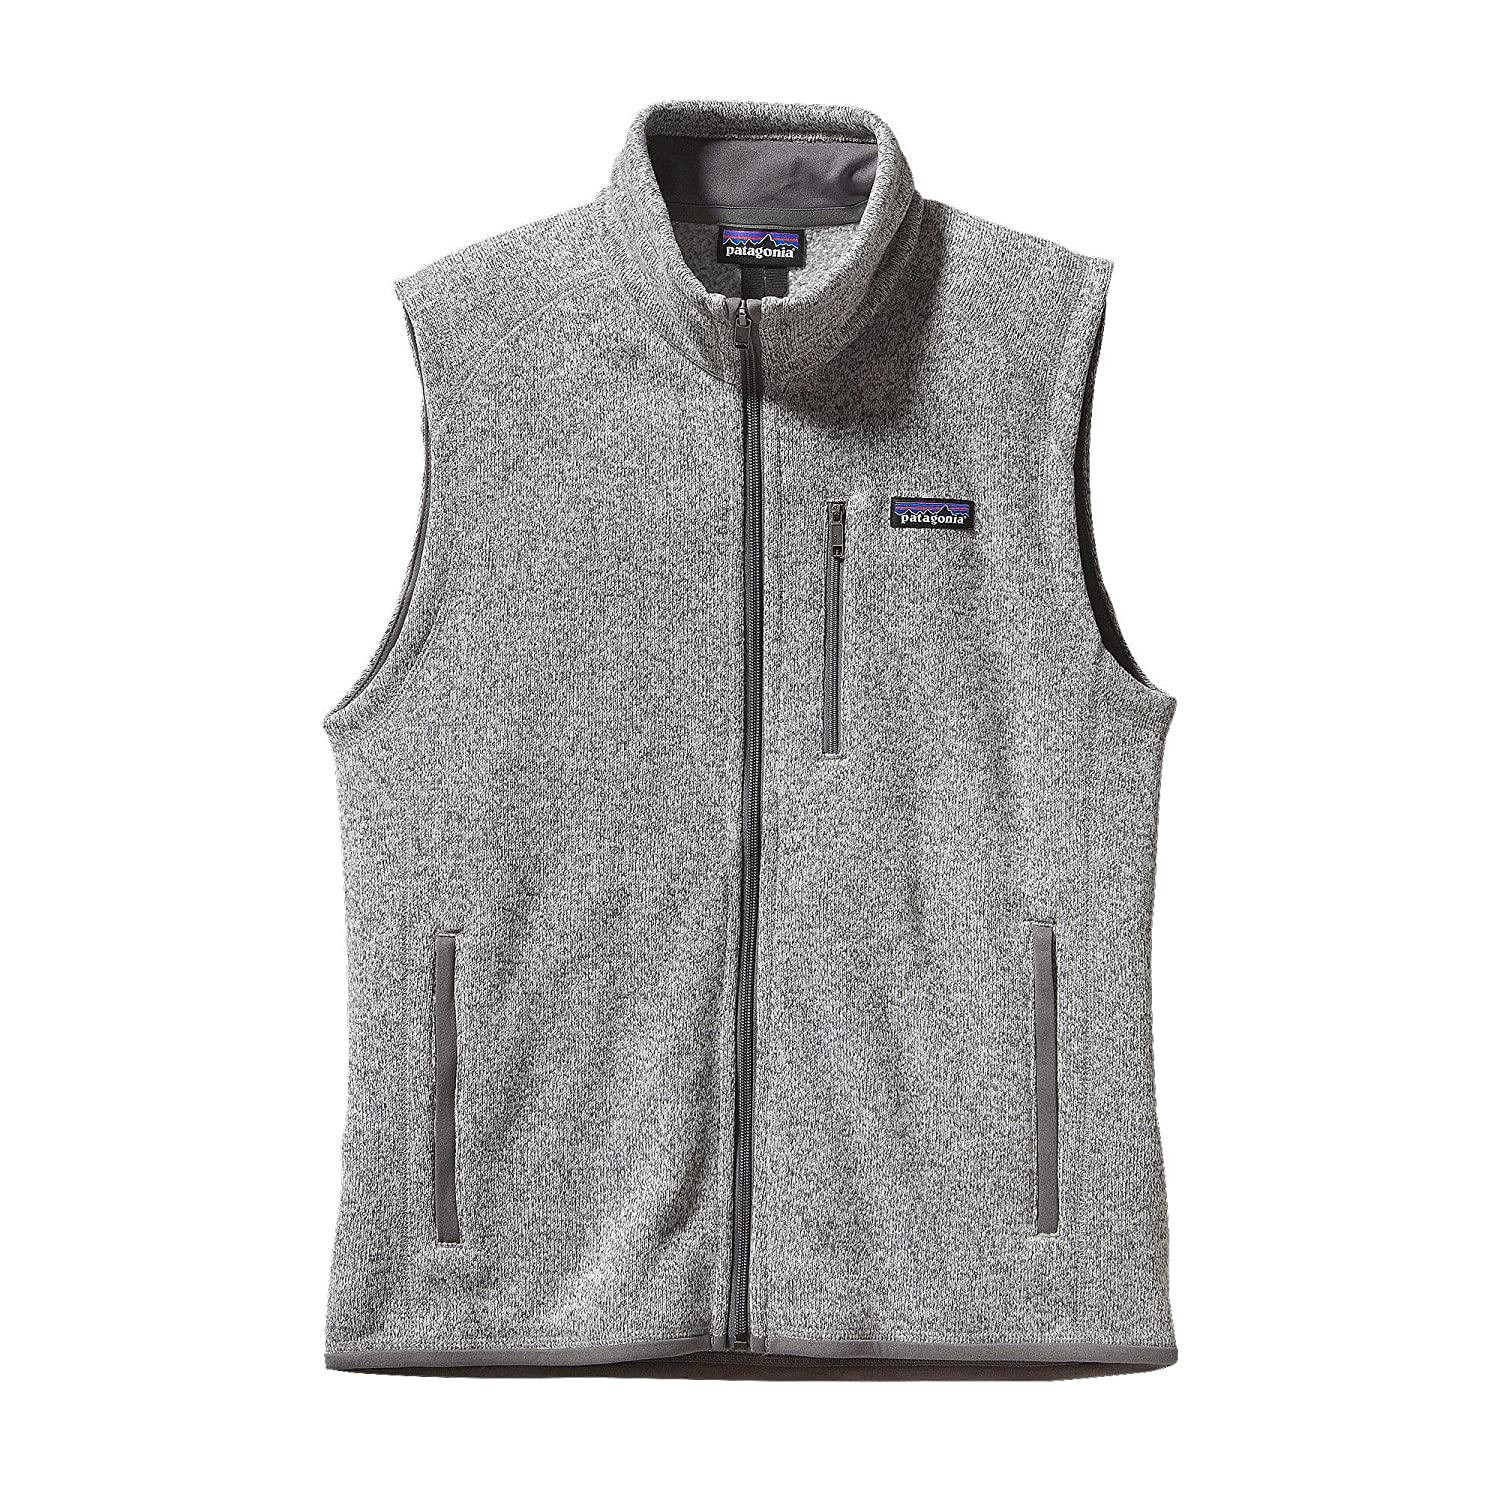 Amazon.com: Patagonia Better Sweater Vest - Men's: Sports & Outdoors